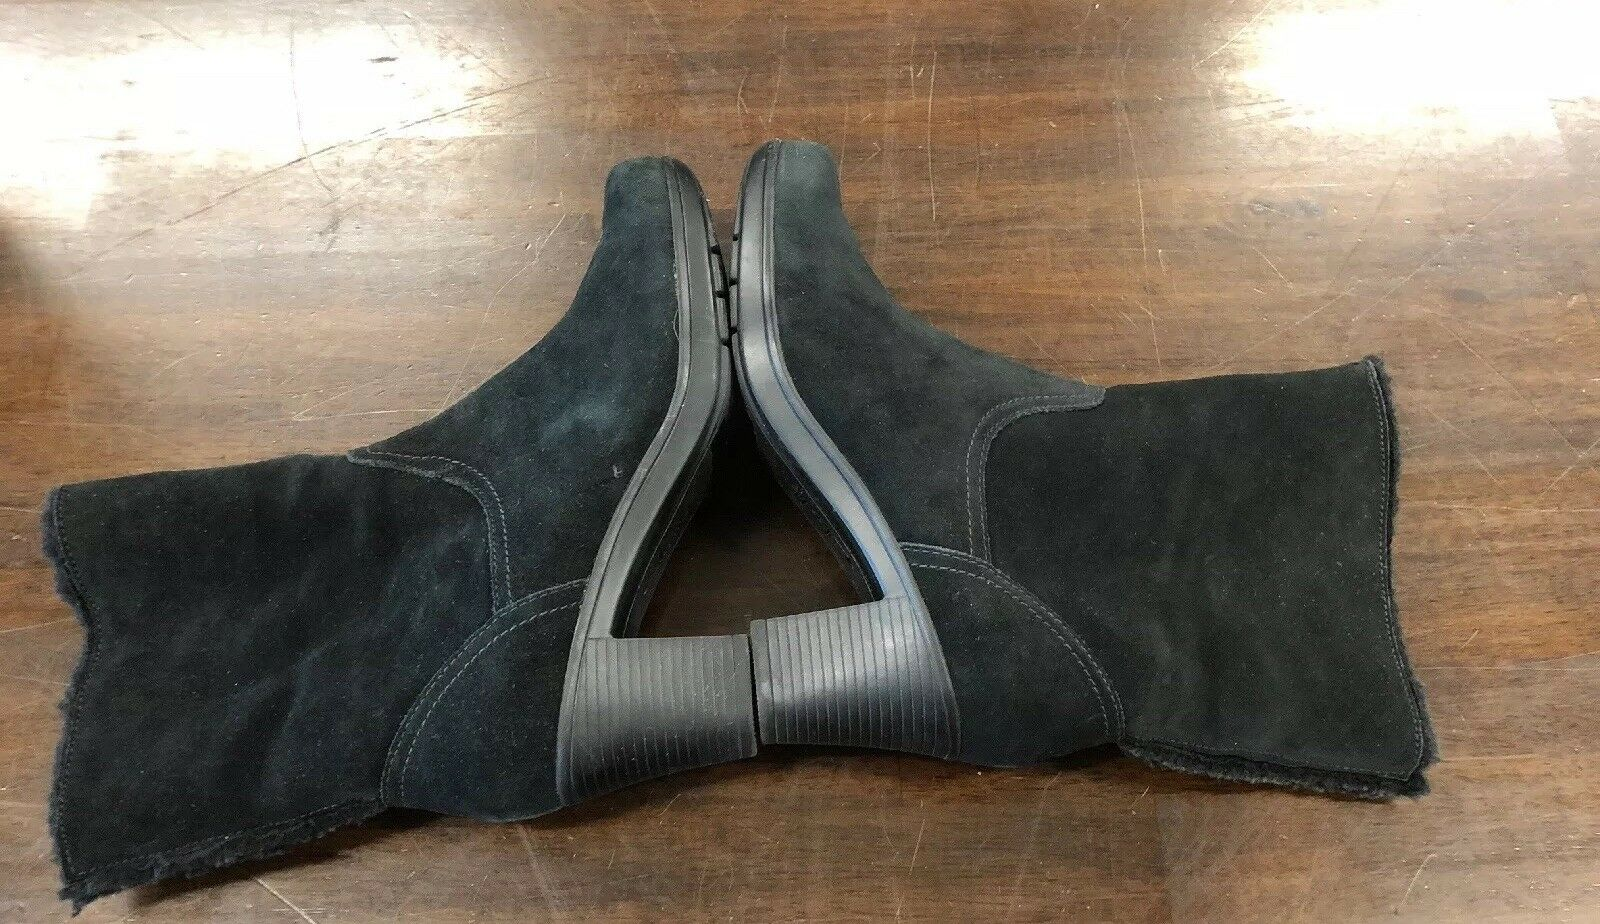 CLARKS Bendables Black Leather Zip Ankle Boots Womens 8 M M M Lined Block Heel 39384 1c365c